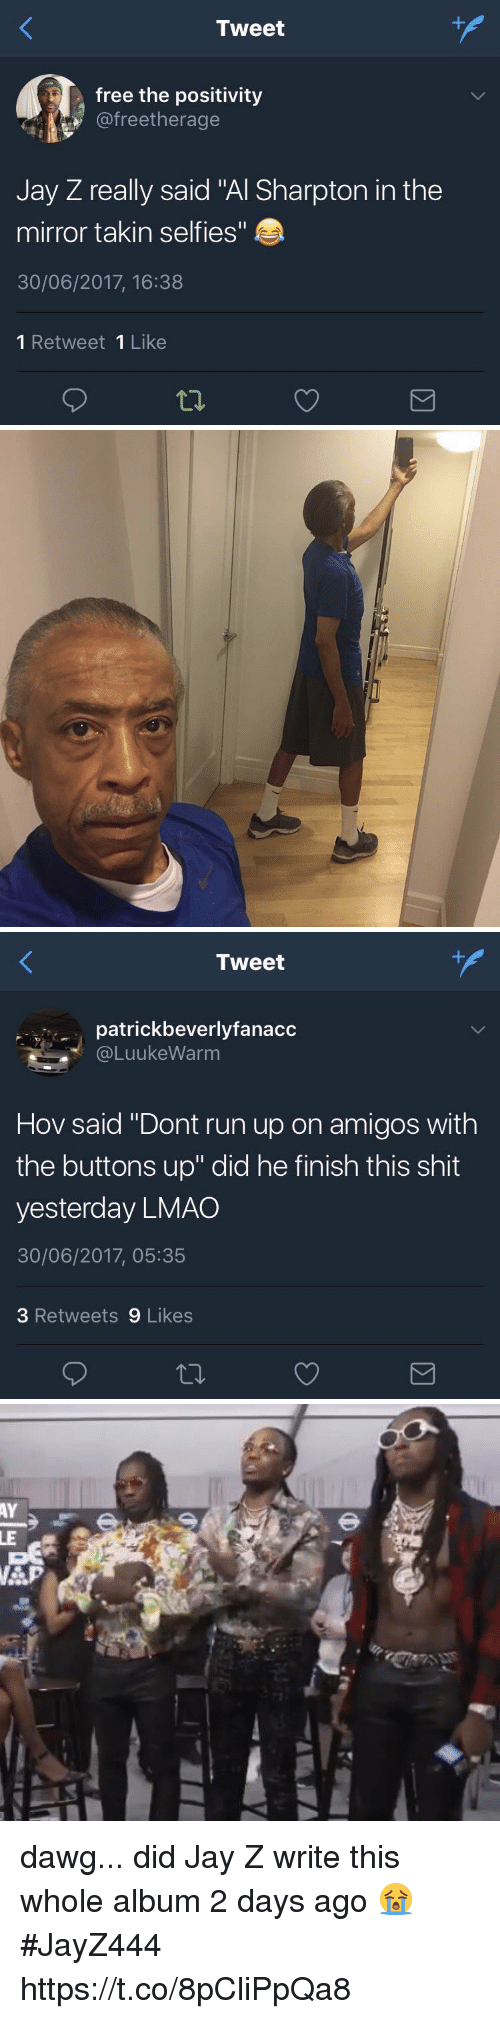 """Al Sharpton, Blackpeopletwitter, and Jay: Tweet  free the positivity  @freetherage  Jay Z really said """"Al Sharpton in the  mirror takin selfies""""  30/06/2017, 16:38  1 Retweet 1 Like   Tweet  patrickbeverlyfanacc  @LuukeWarm  Hov said """"Dont run up on amigos with  the buttons up"""" did he finish this shit  yesterday LMAO  30/06/2017, 05:35  3 Retweets 9 Likes dawg... did Jay Z write this whole album 2 days ago 😭 #JayZ444 https://t.co/8pCliPpQa8"""